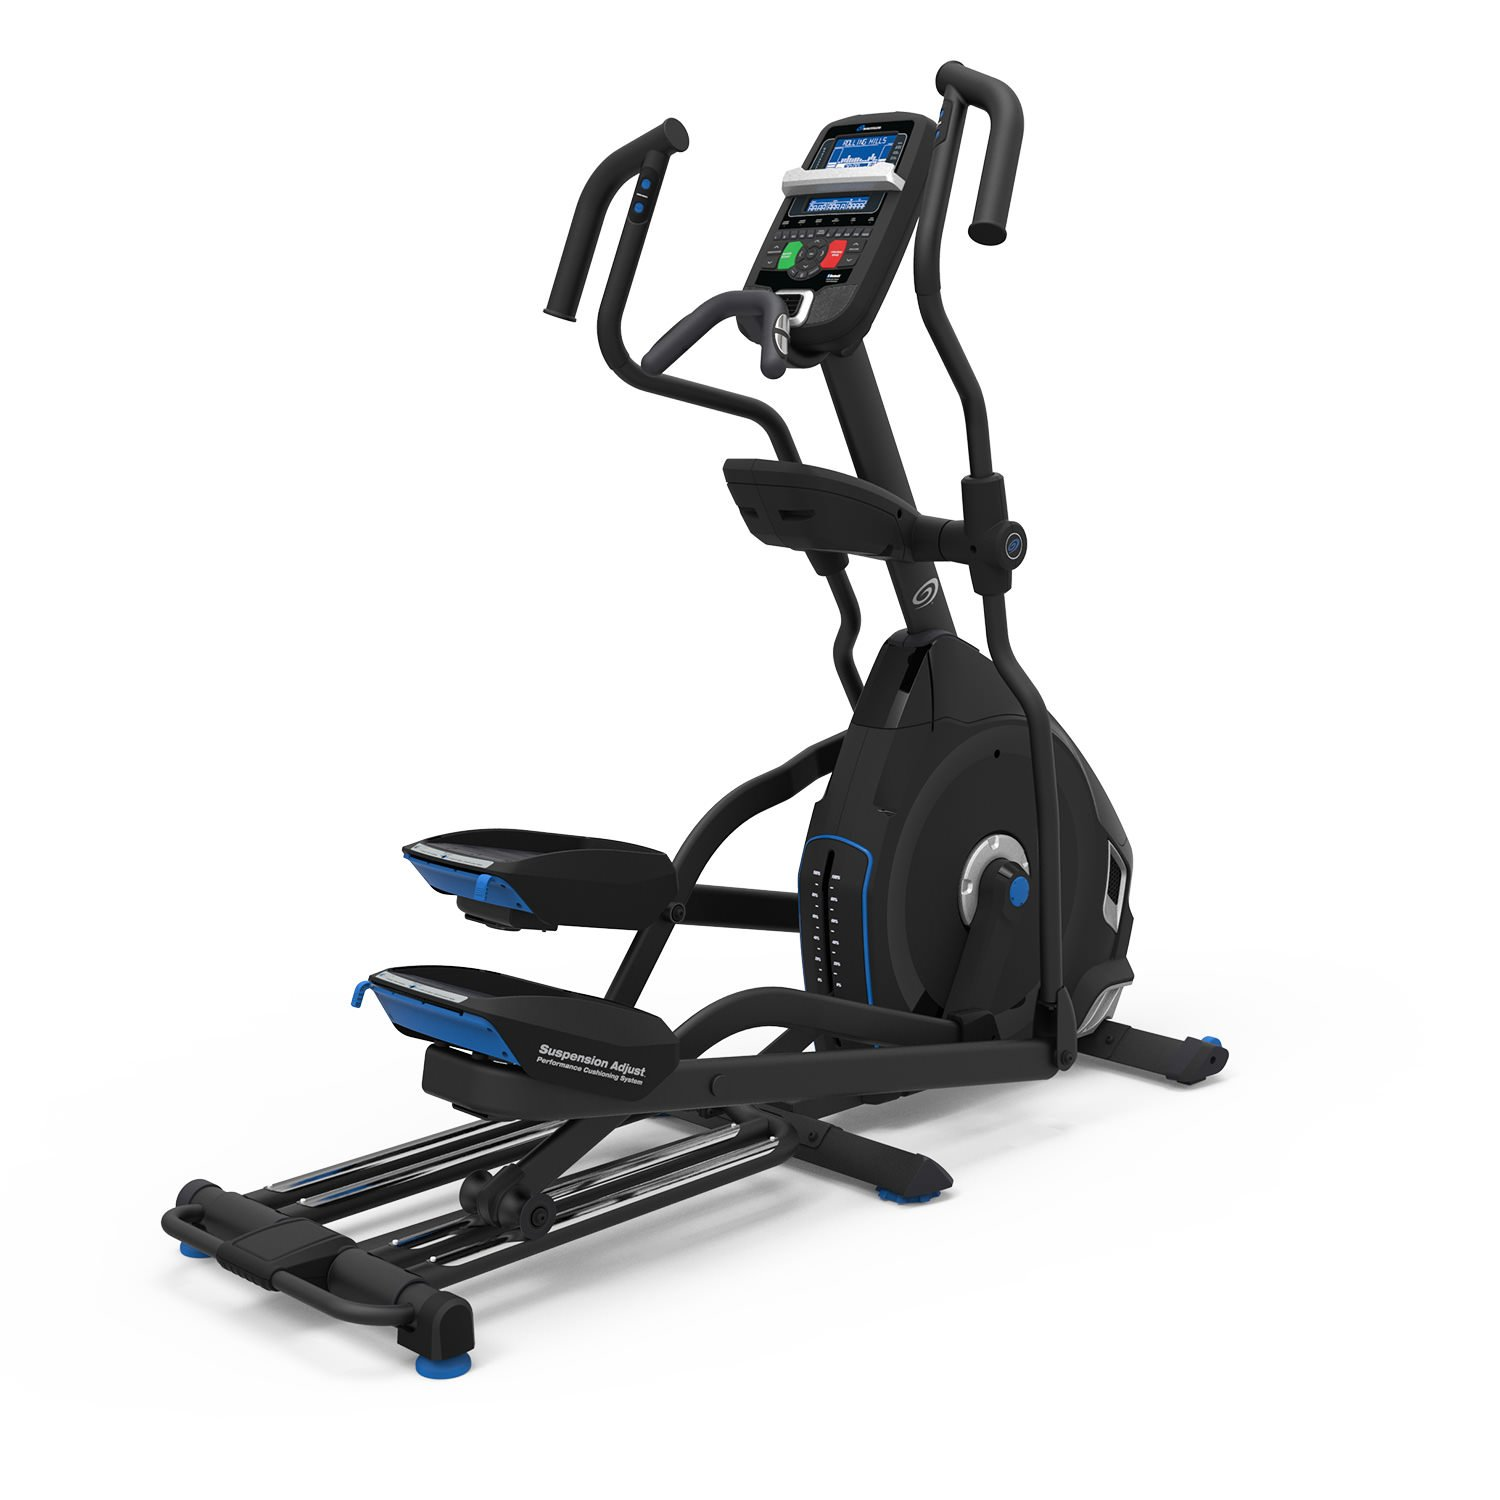 Nautilus E628 Elliptical Cross Trainer